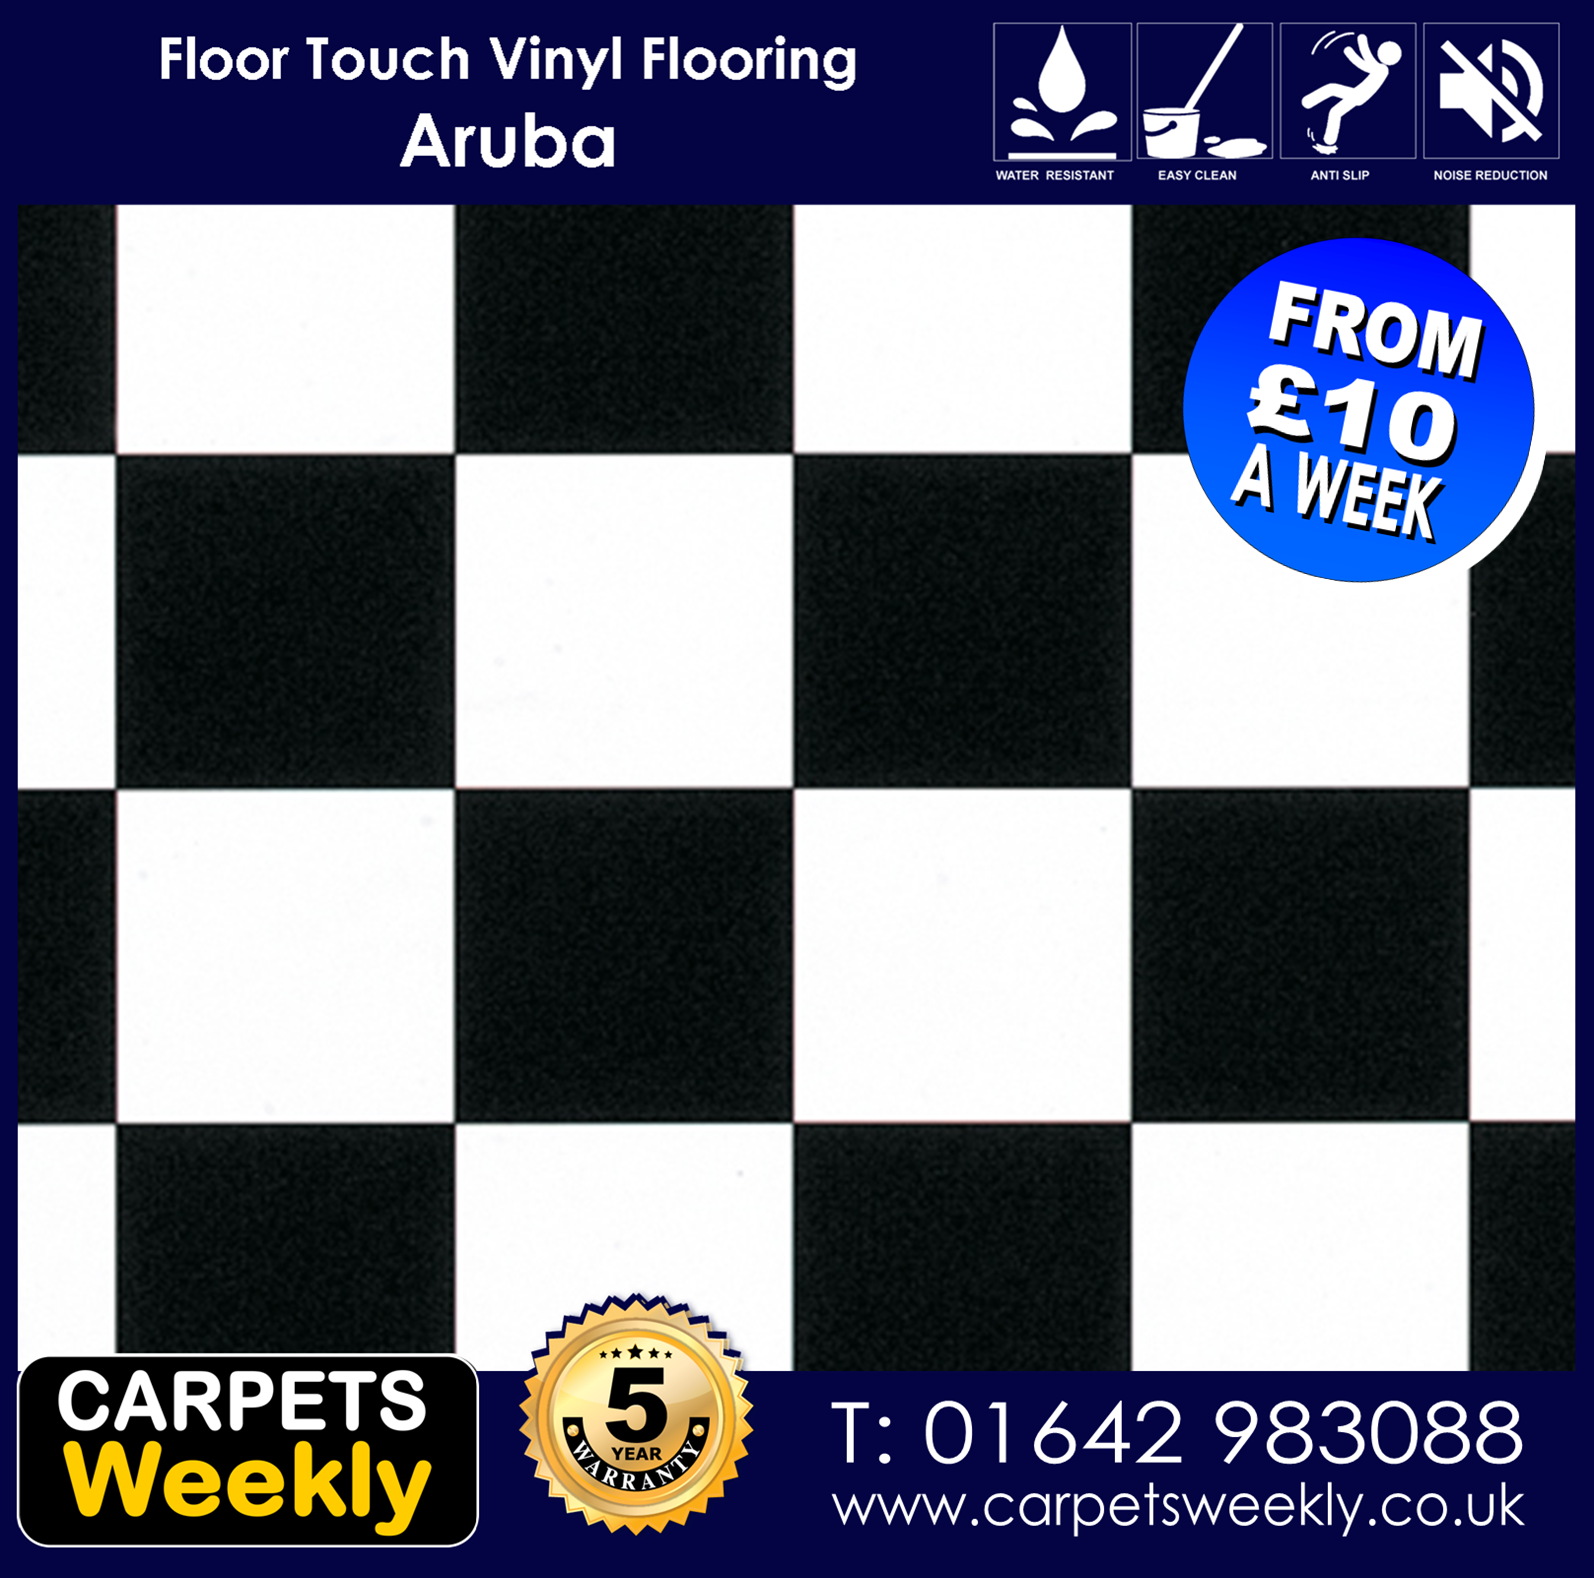 Aruba Vinyl Flooring from Carpets Weekly    by Floor Touch from Carpets Weekly